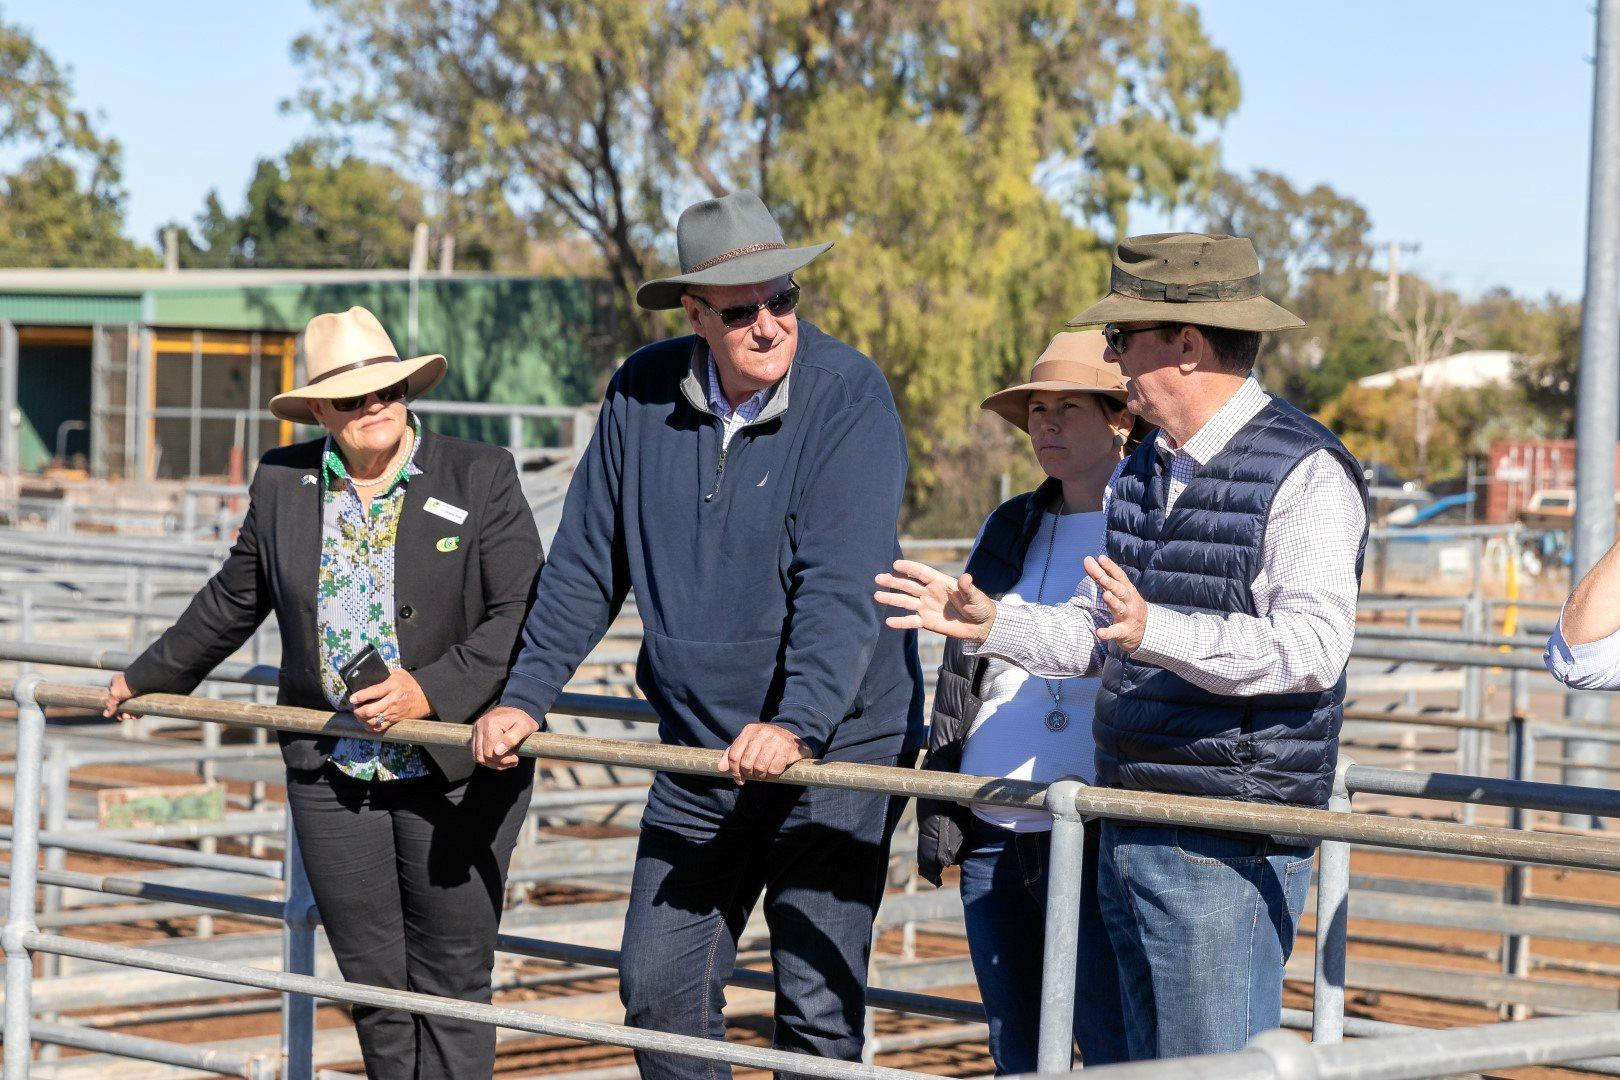 Central Highlands Regional Council Cr Christine Rolfe, Minister for Agricultural Industry Development and Fisheries Mark Furner, Cr Megan Daniels and Mayor Cr Kerry Hayes inspecting the Emerald saleyards.